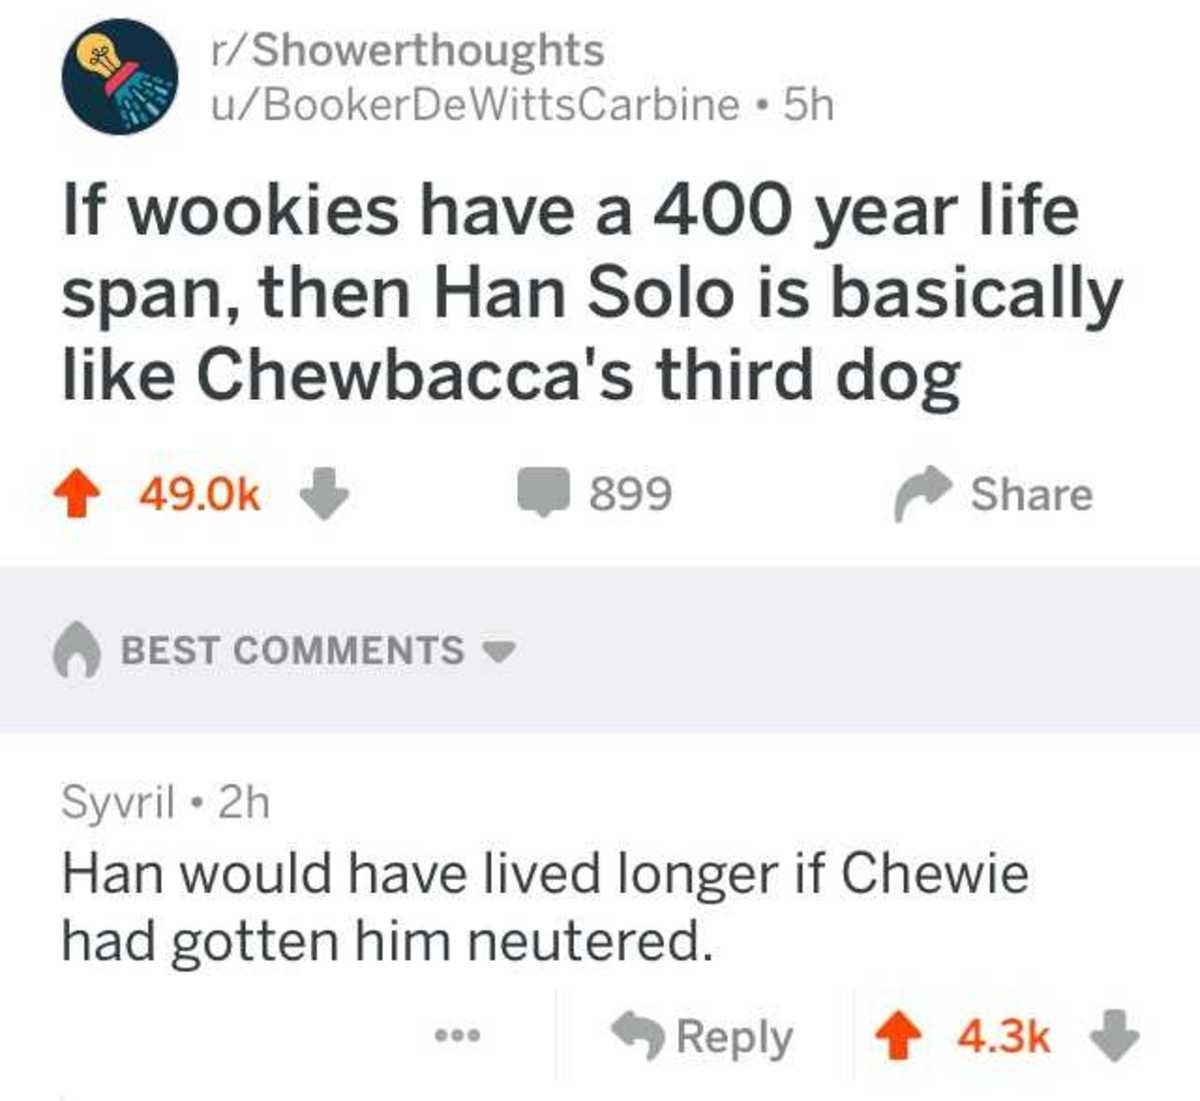 Pendaps Cadivagup Mepsirabed. . If wookies have tit wll,, 00 year life span, allert Solo is basically like ' s third dog BEST COMMENTS V Sevral . Han would have